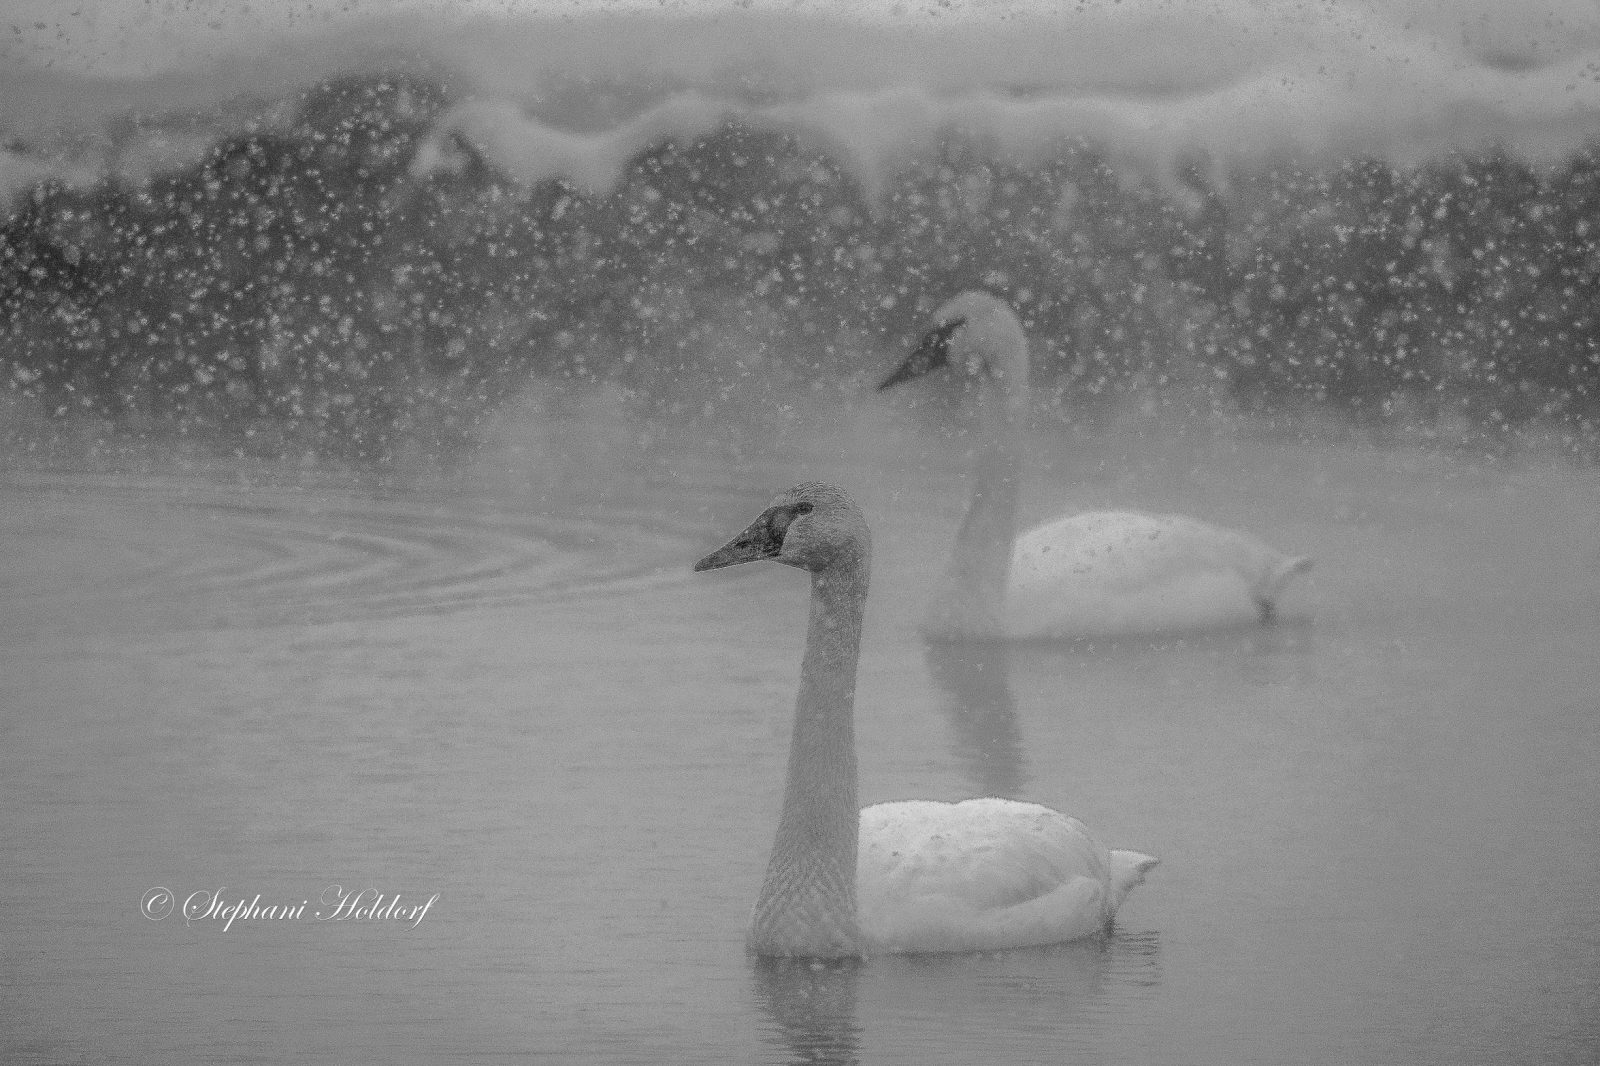 Swans in falling snow